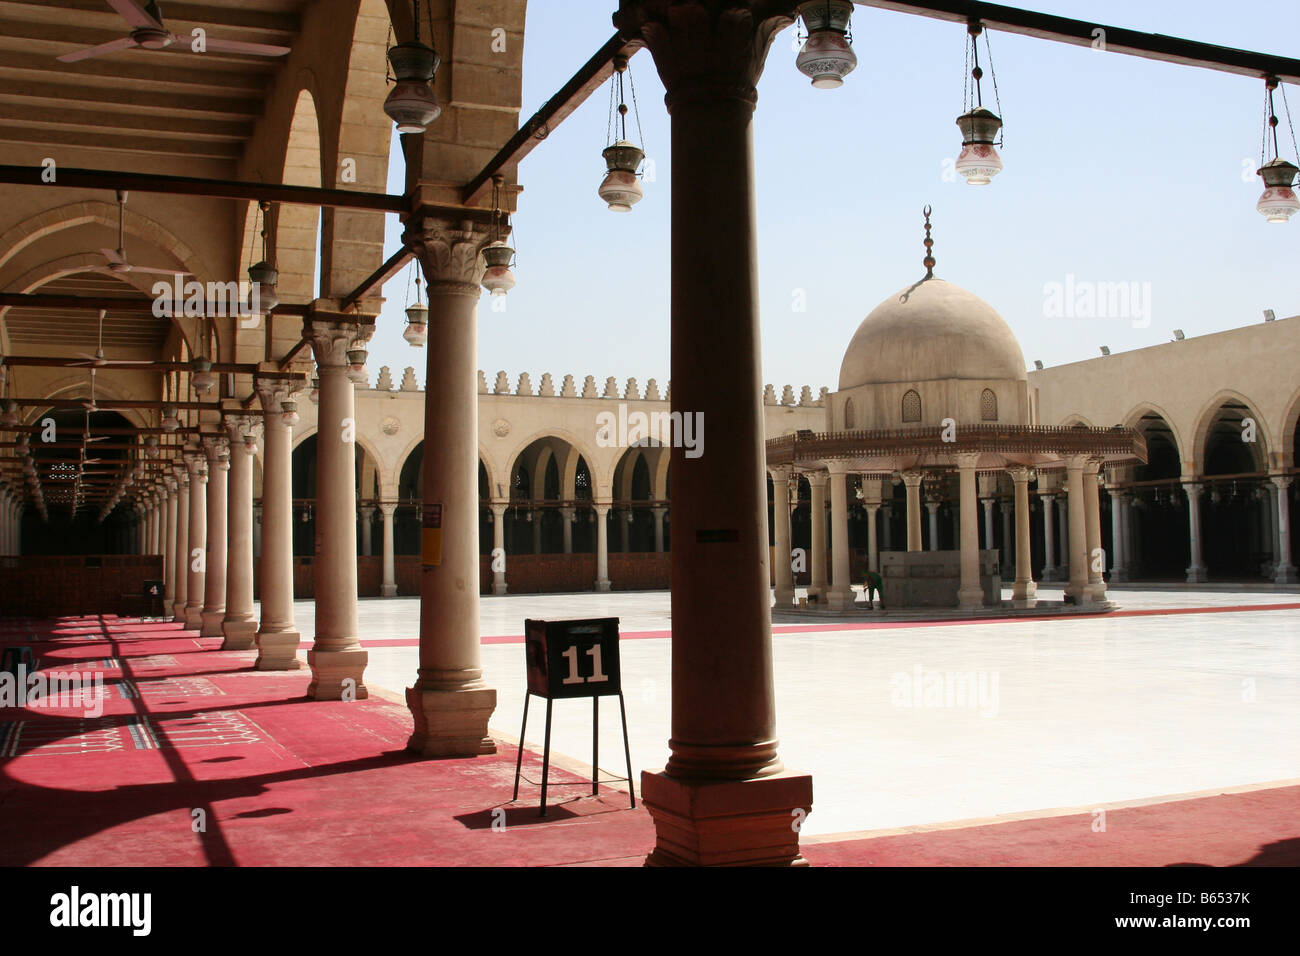 islamic cairo,  Mosque of Amr Ibn Al aas in Cairo - Egypt - Stock Image